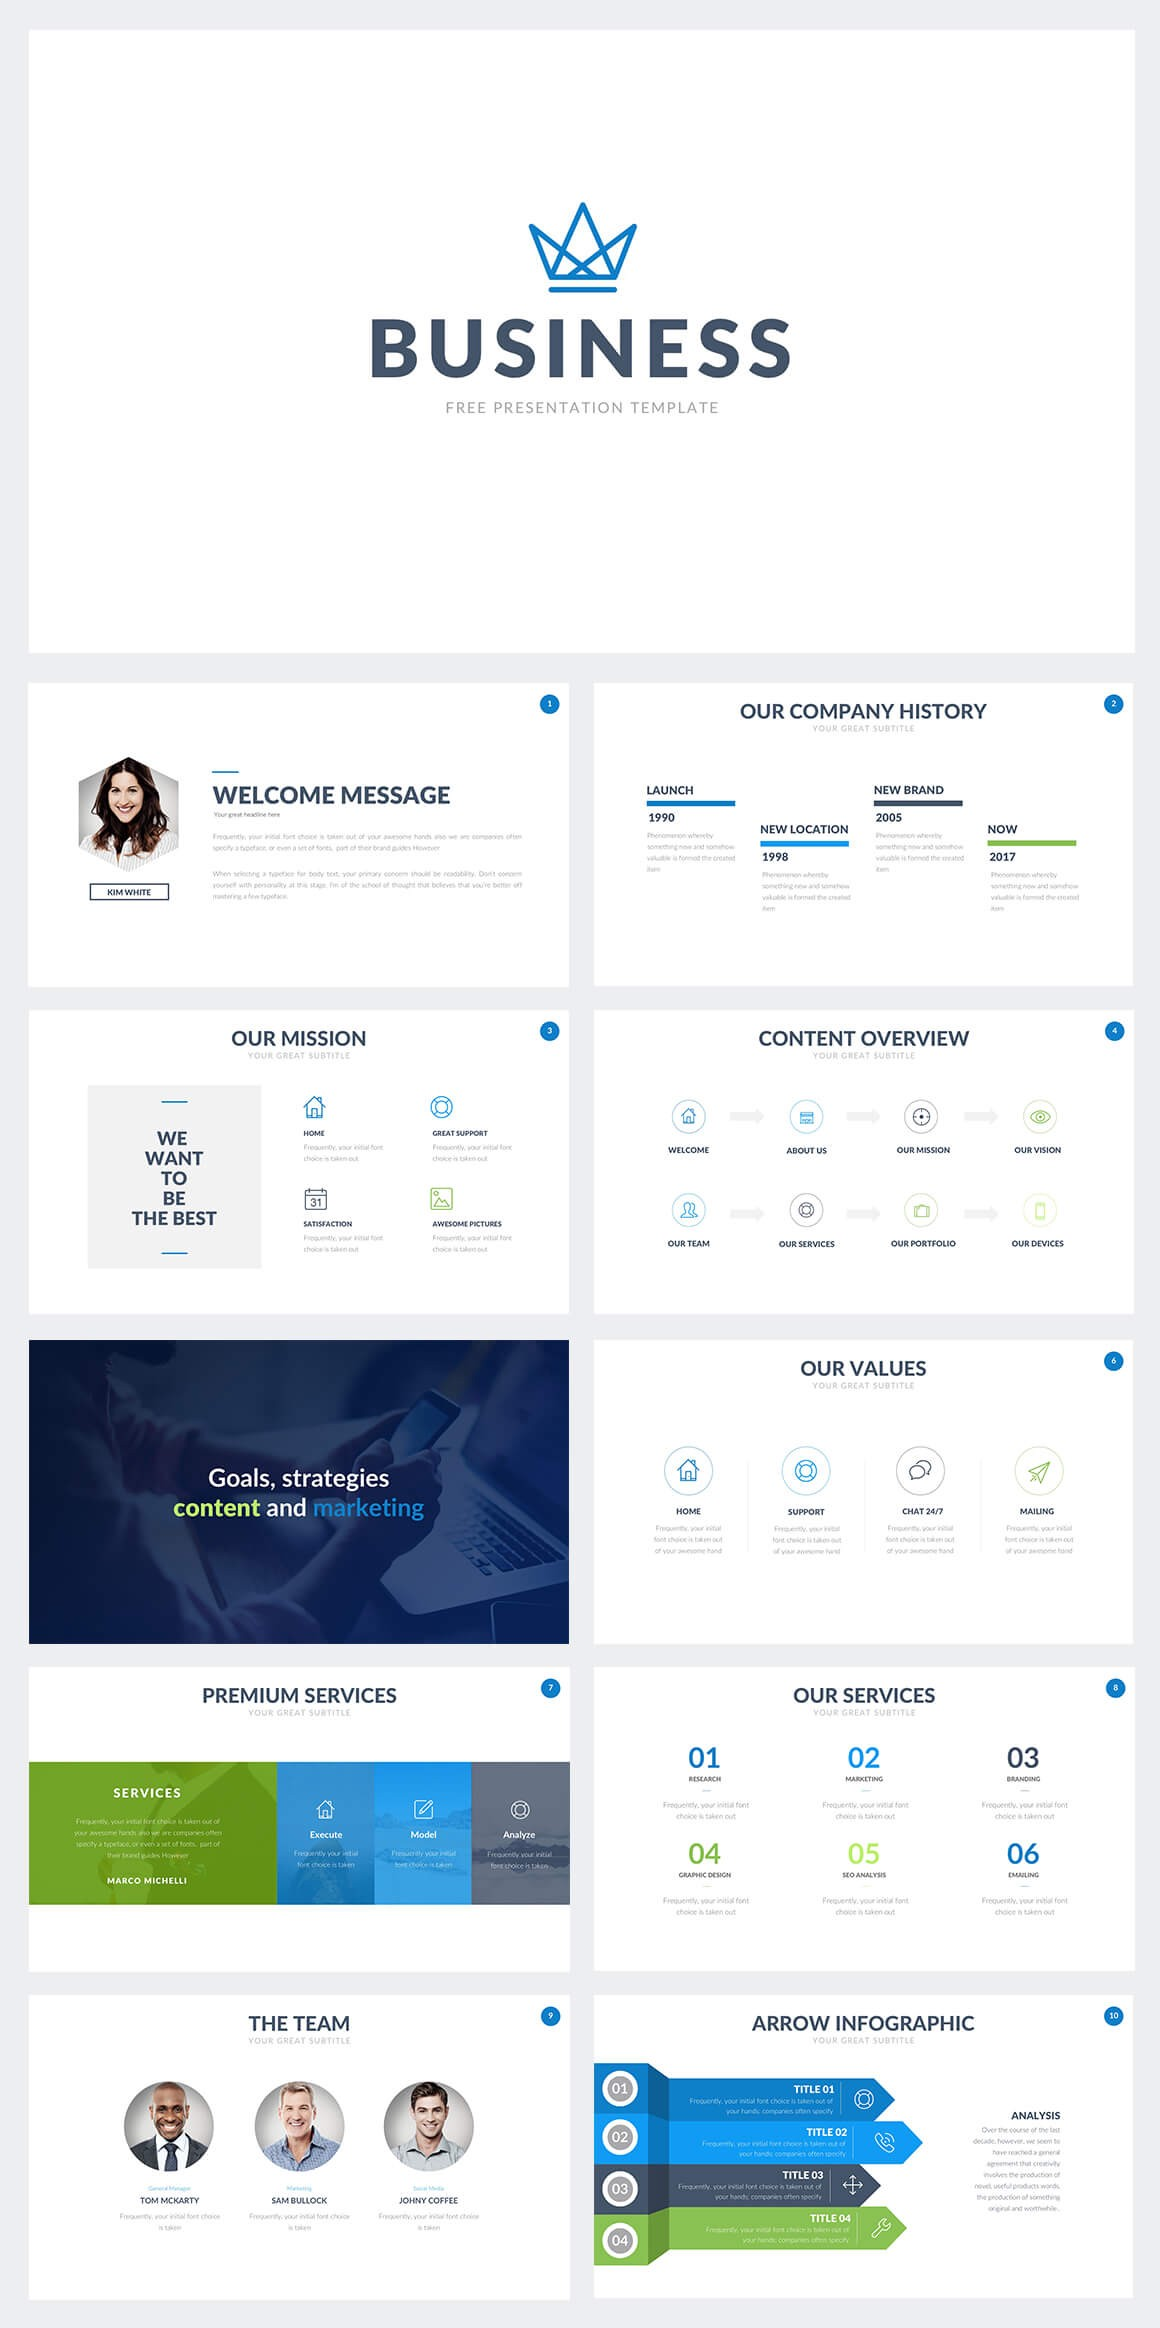 40 free cool powerpoint templates for presentations this business ppt template is great to show your companies values missions history and services take advantage of this free perfect business ppt wajeb Choice Image